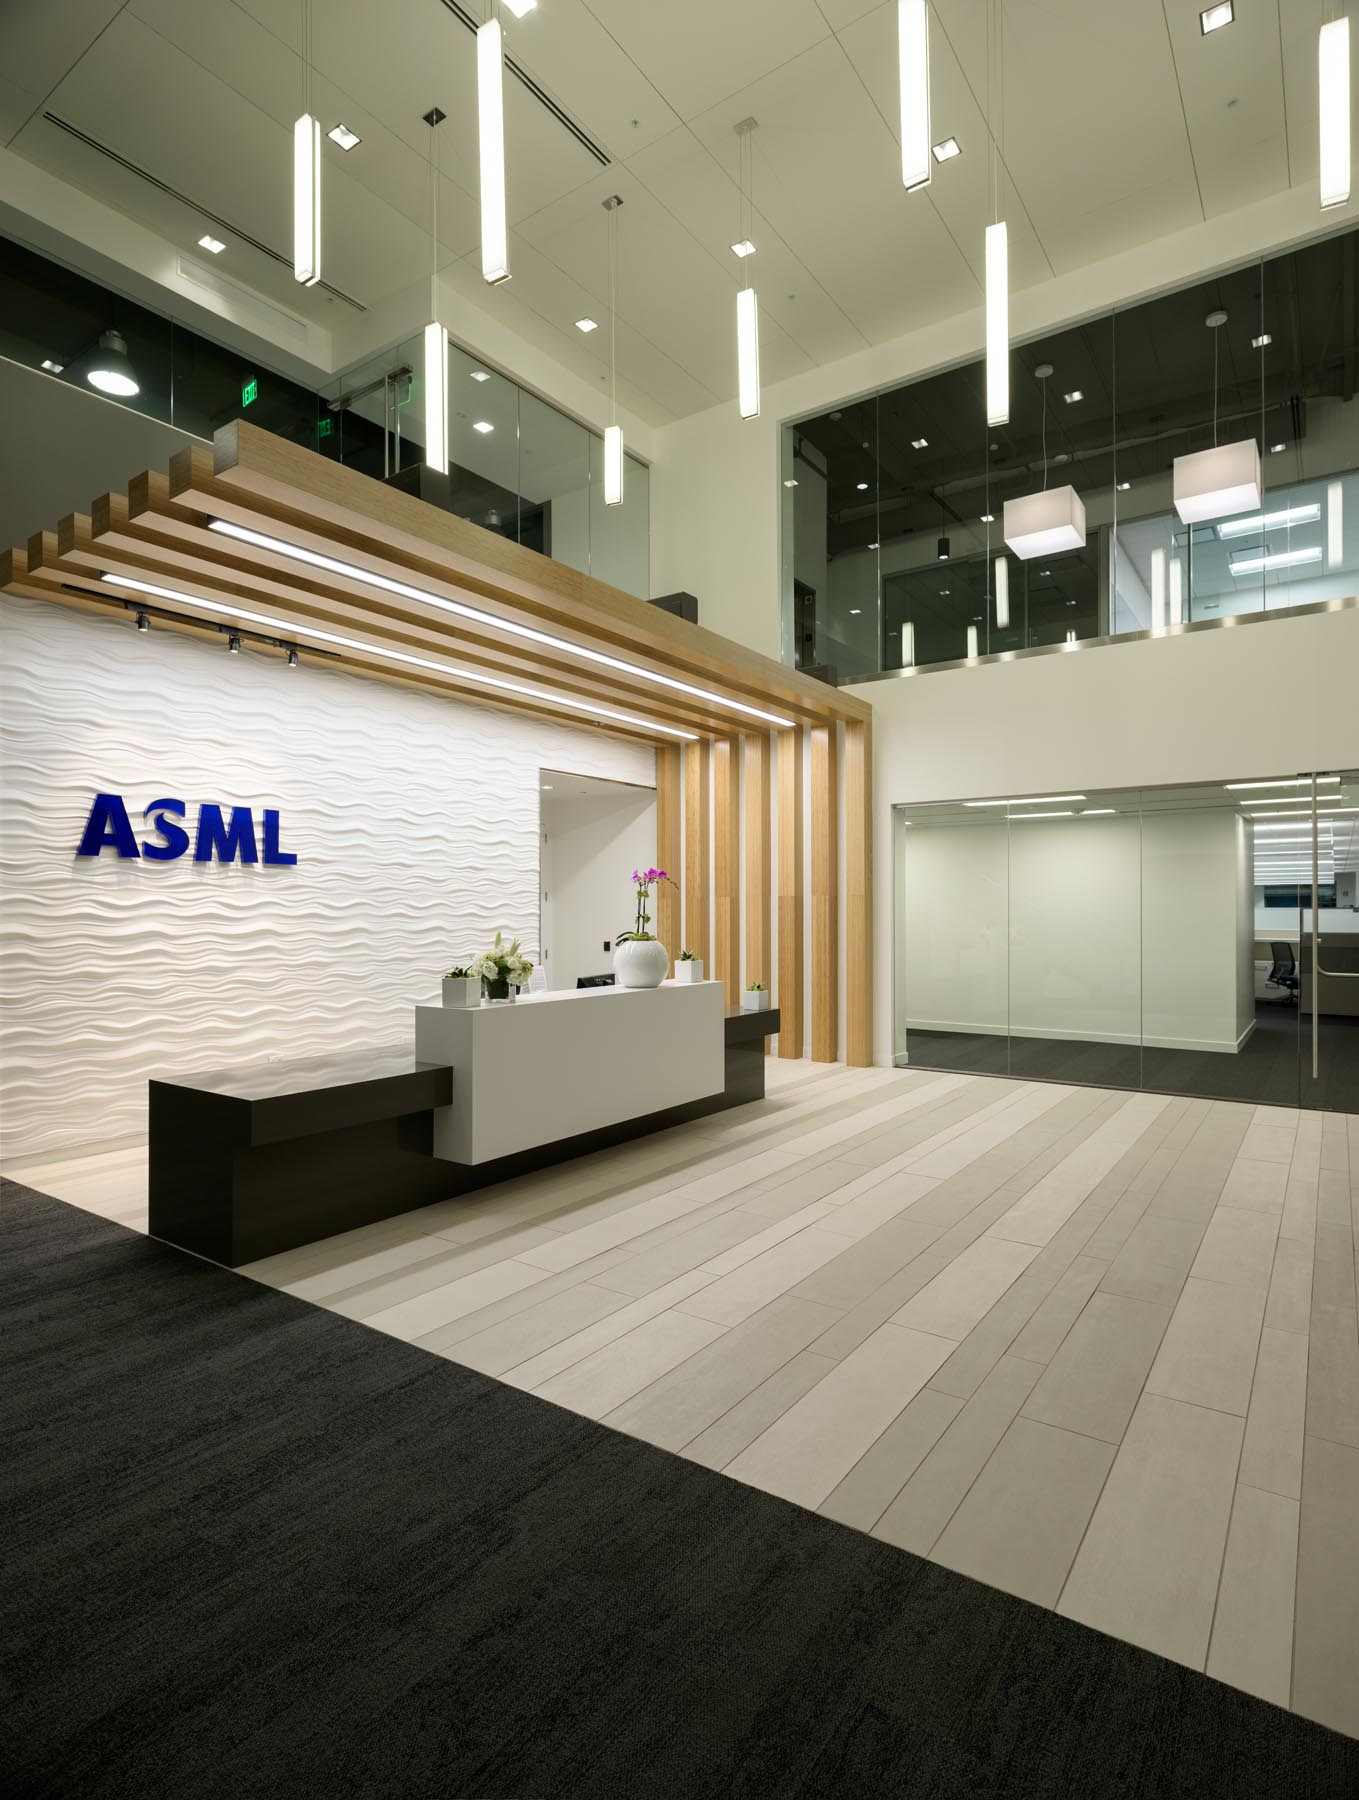 commercial interior architecture photography in san jose asml